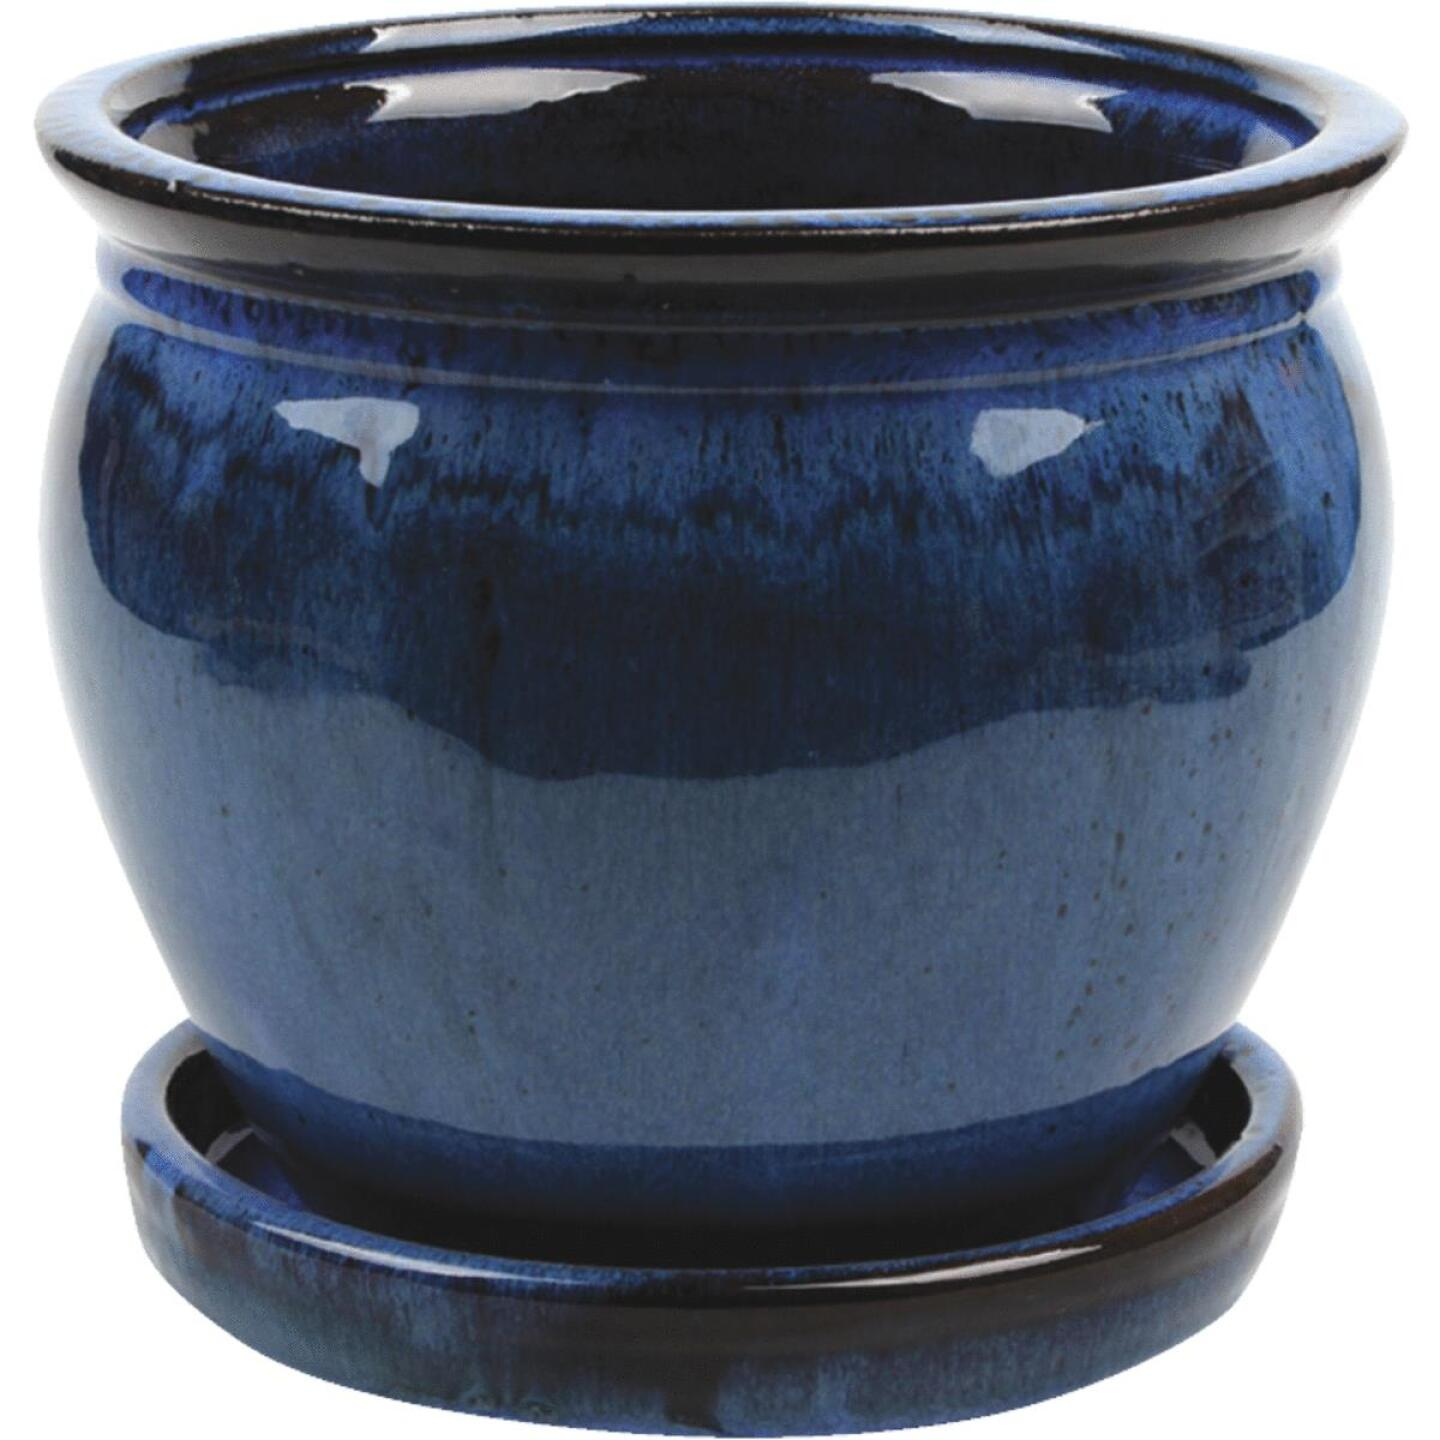 Southern Patio Wisteria 6 In. Dia. x 5.3 In. H. Dripping Blue Clay Planter Image 1